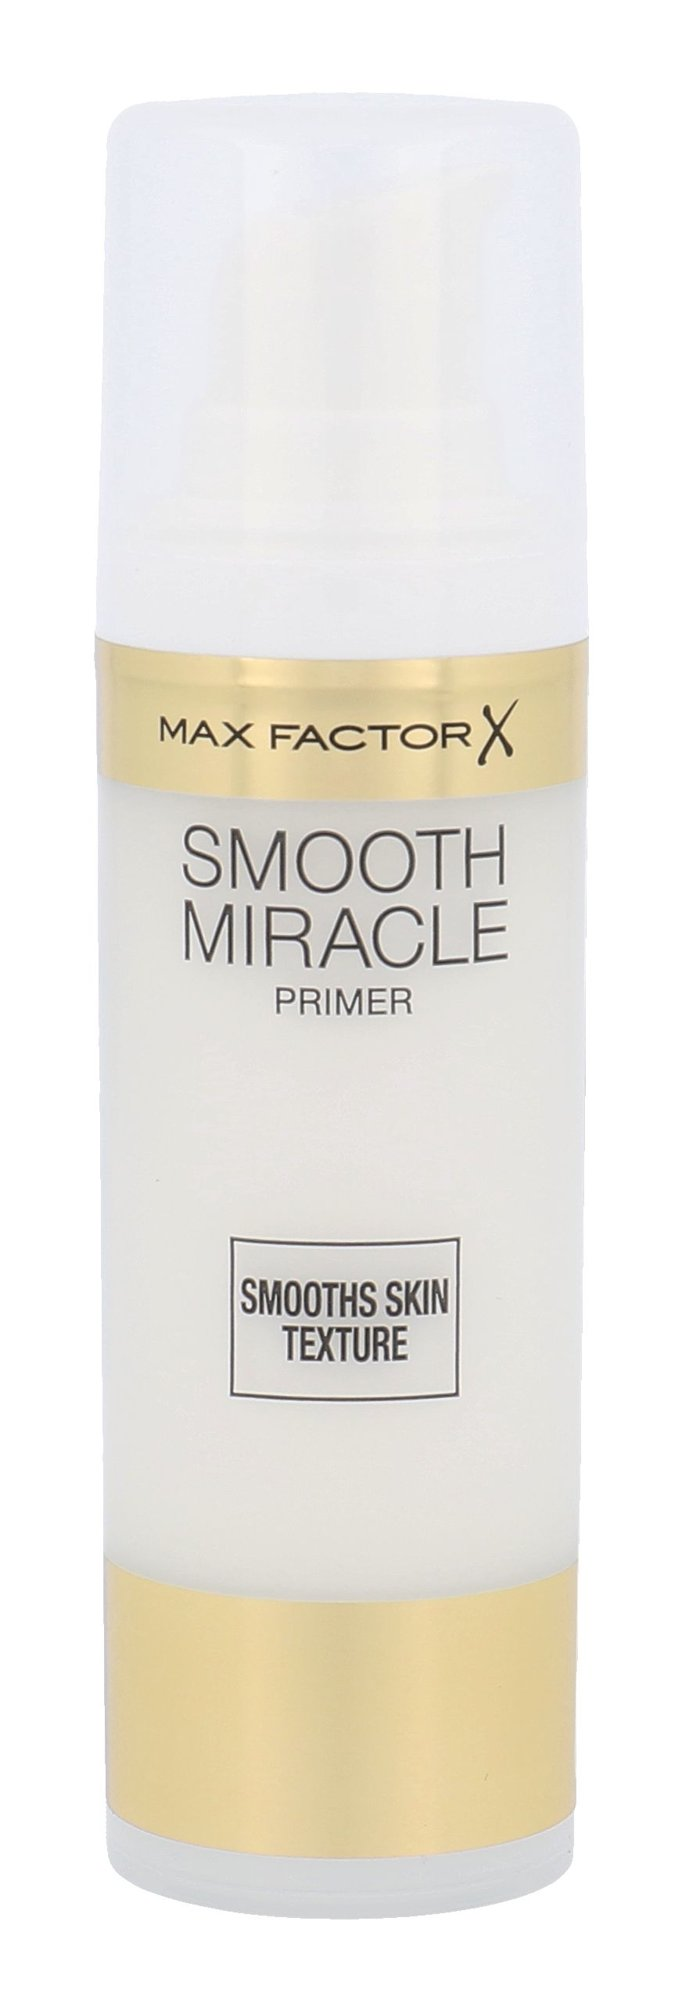 Max Factor Smooth Miracle Cosmetic 30ml